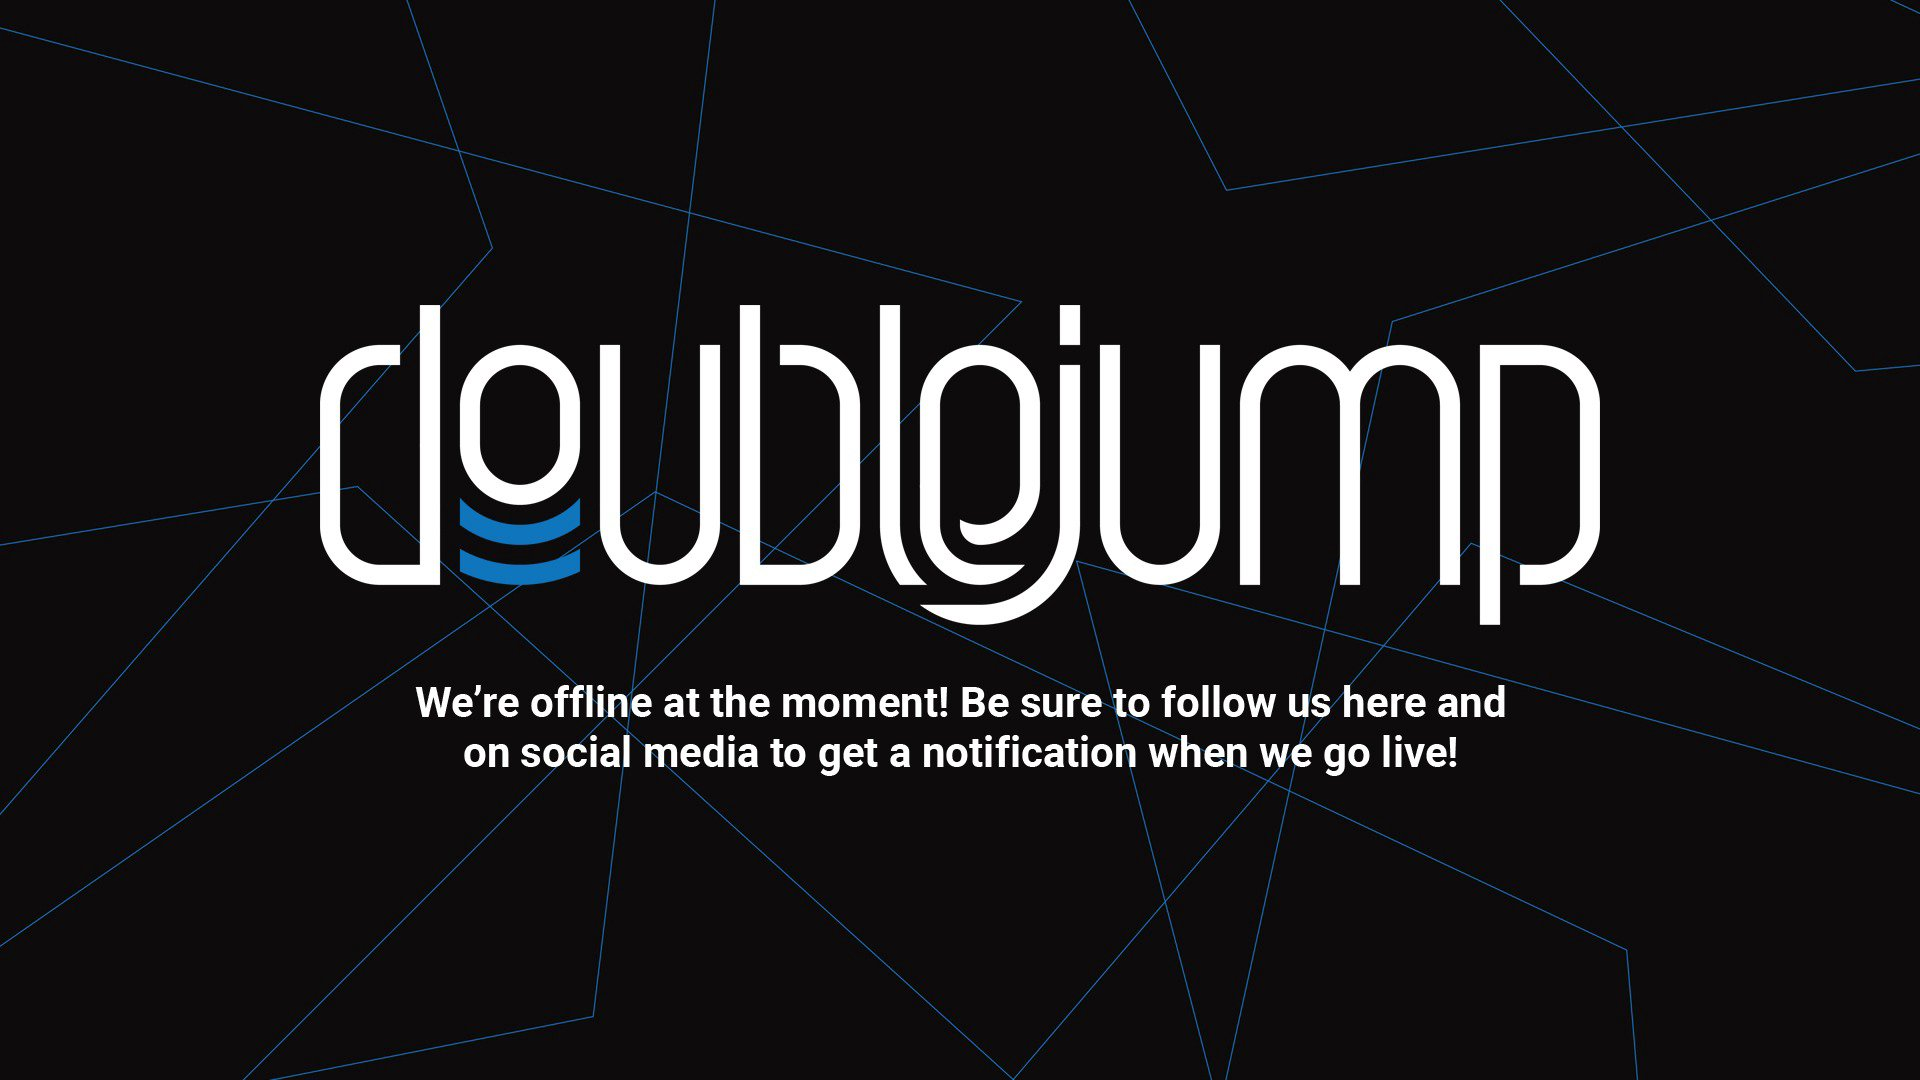 Twitch stream of DoublejumpCo